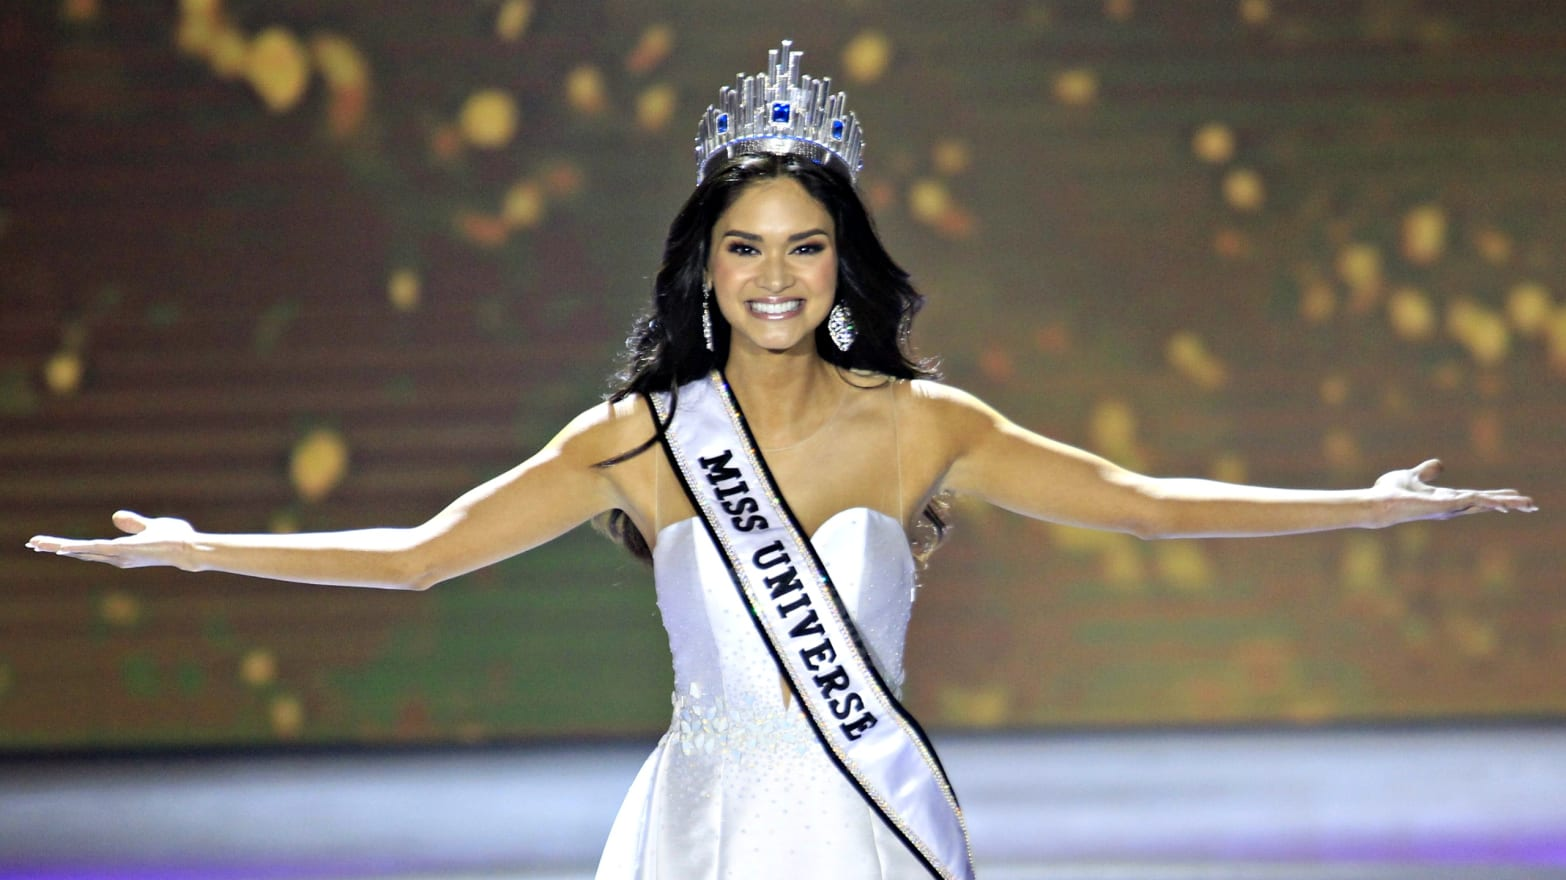 How to Watch Miss Universe 2017 65th Contest Live Stream and